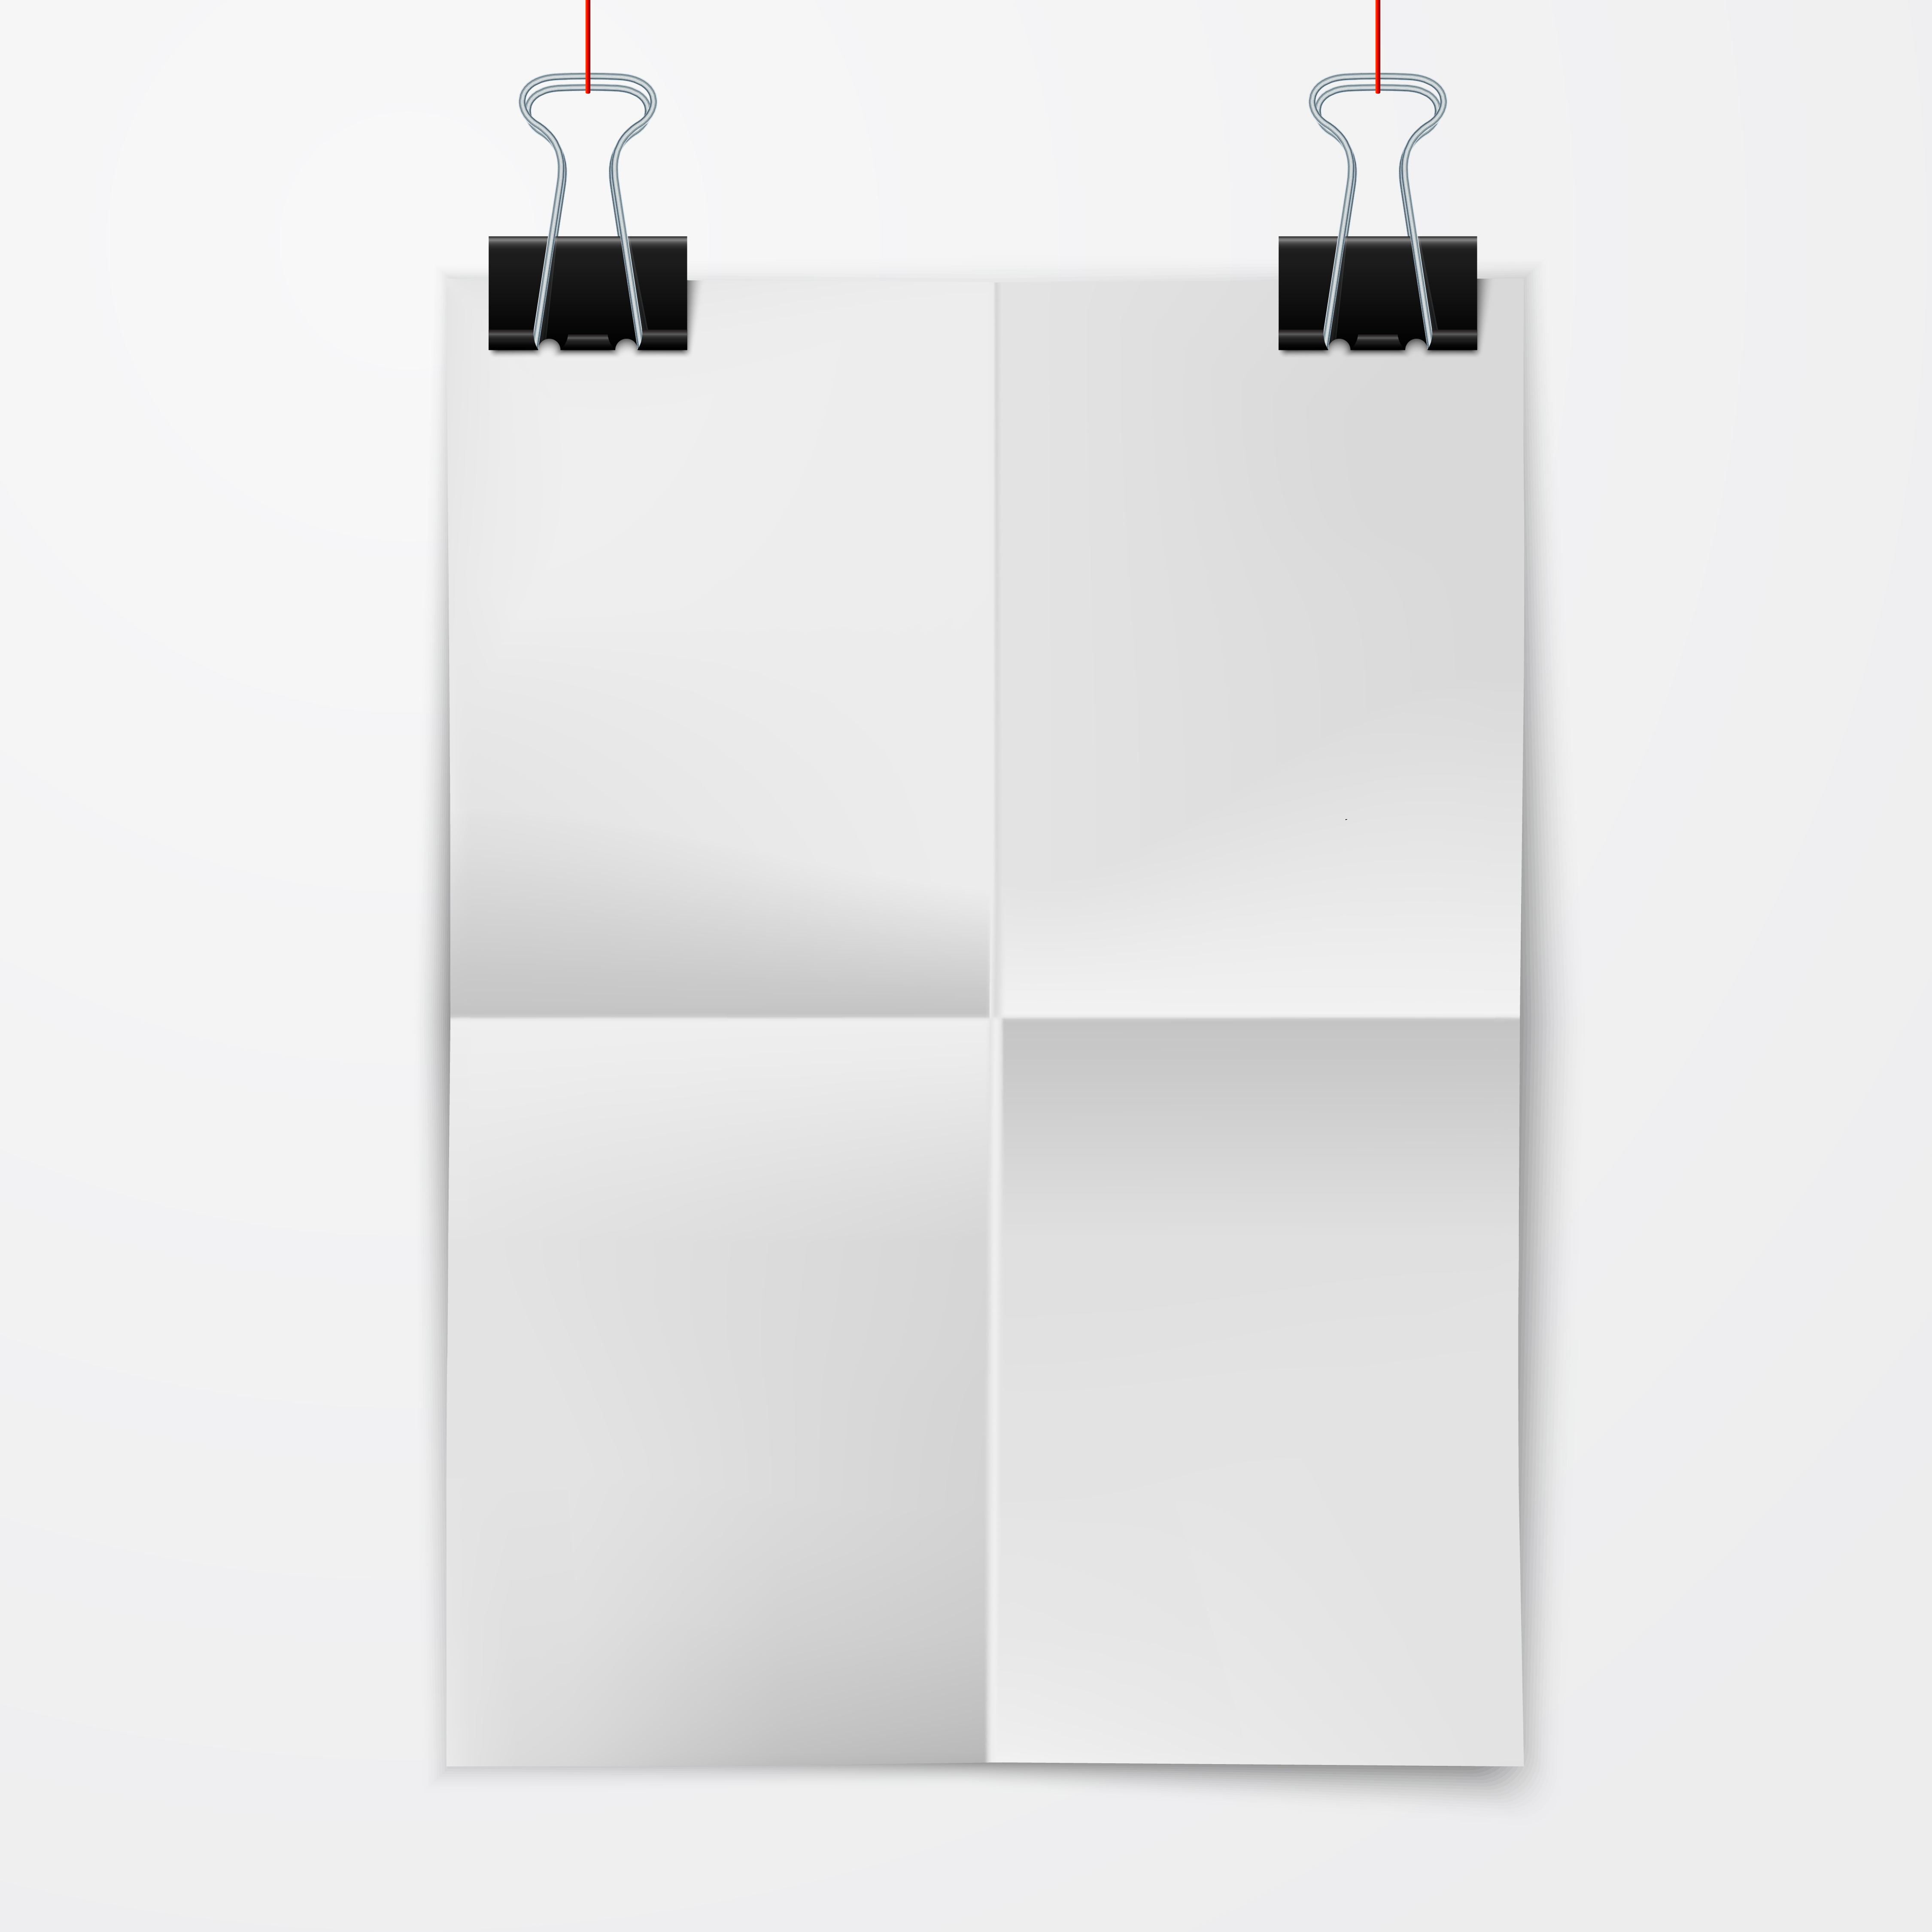 Folded Paper Sheet With Binder Clip